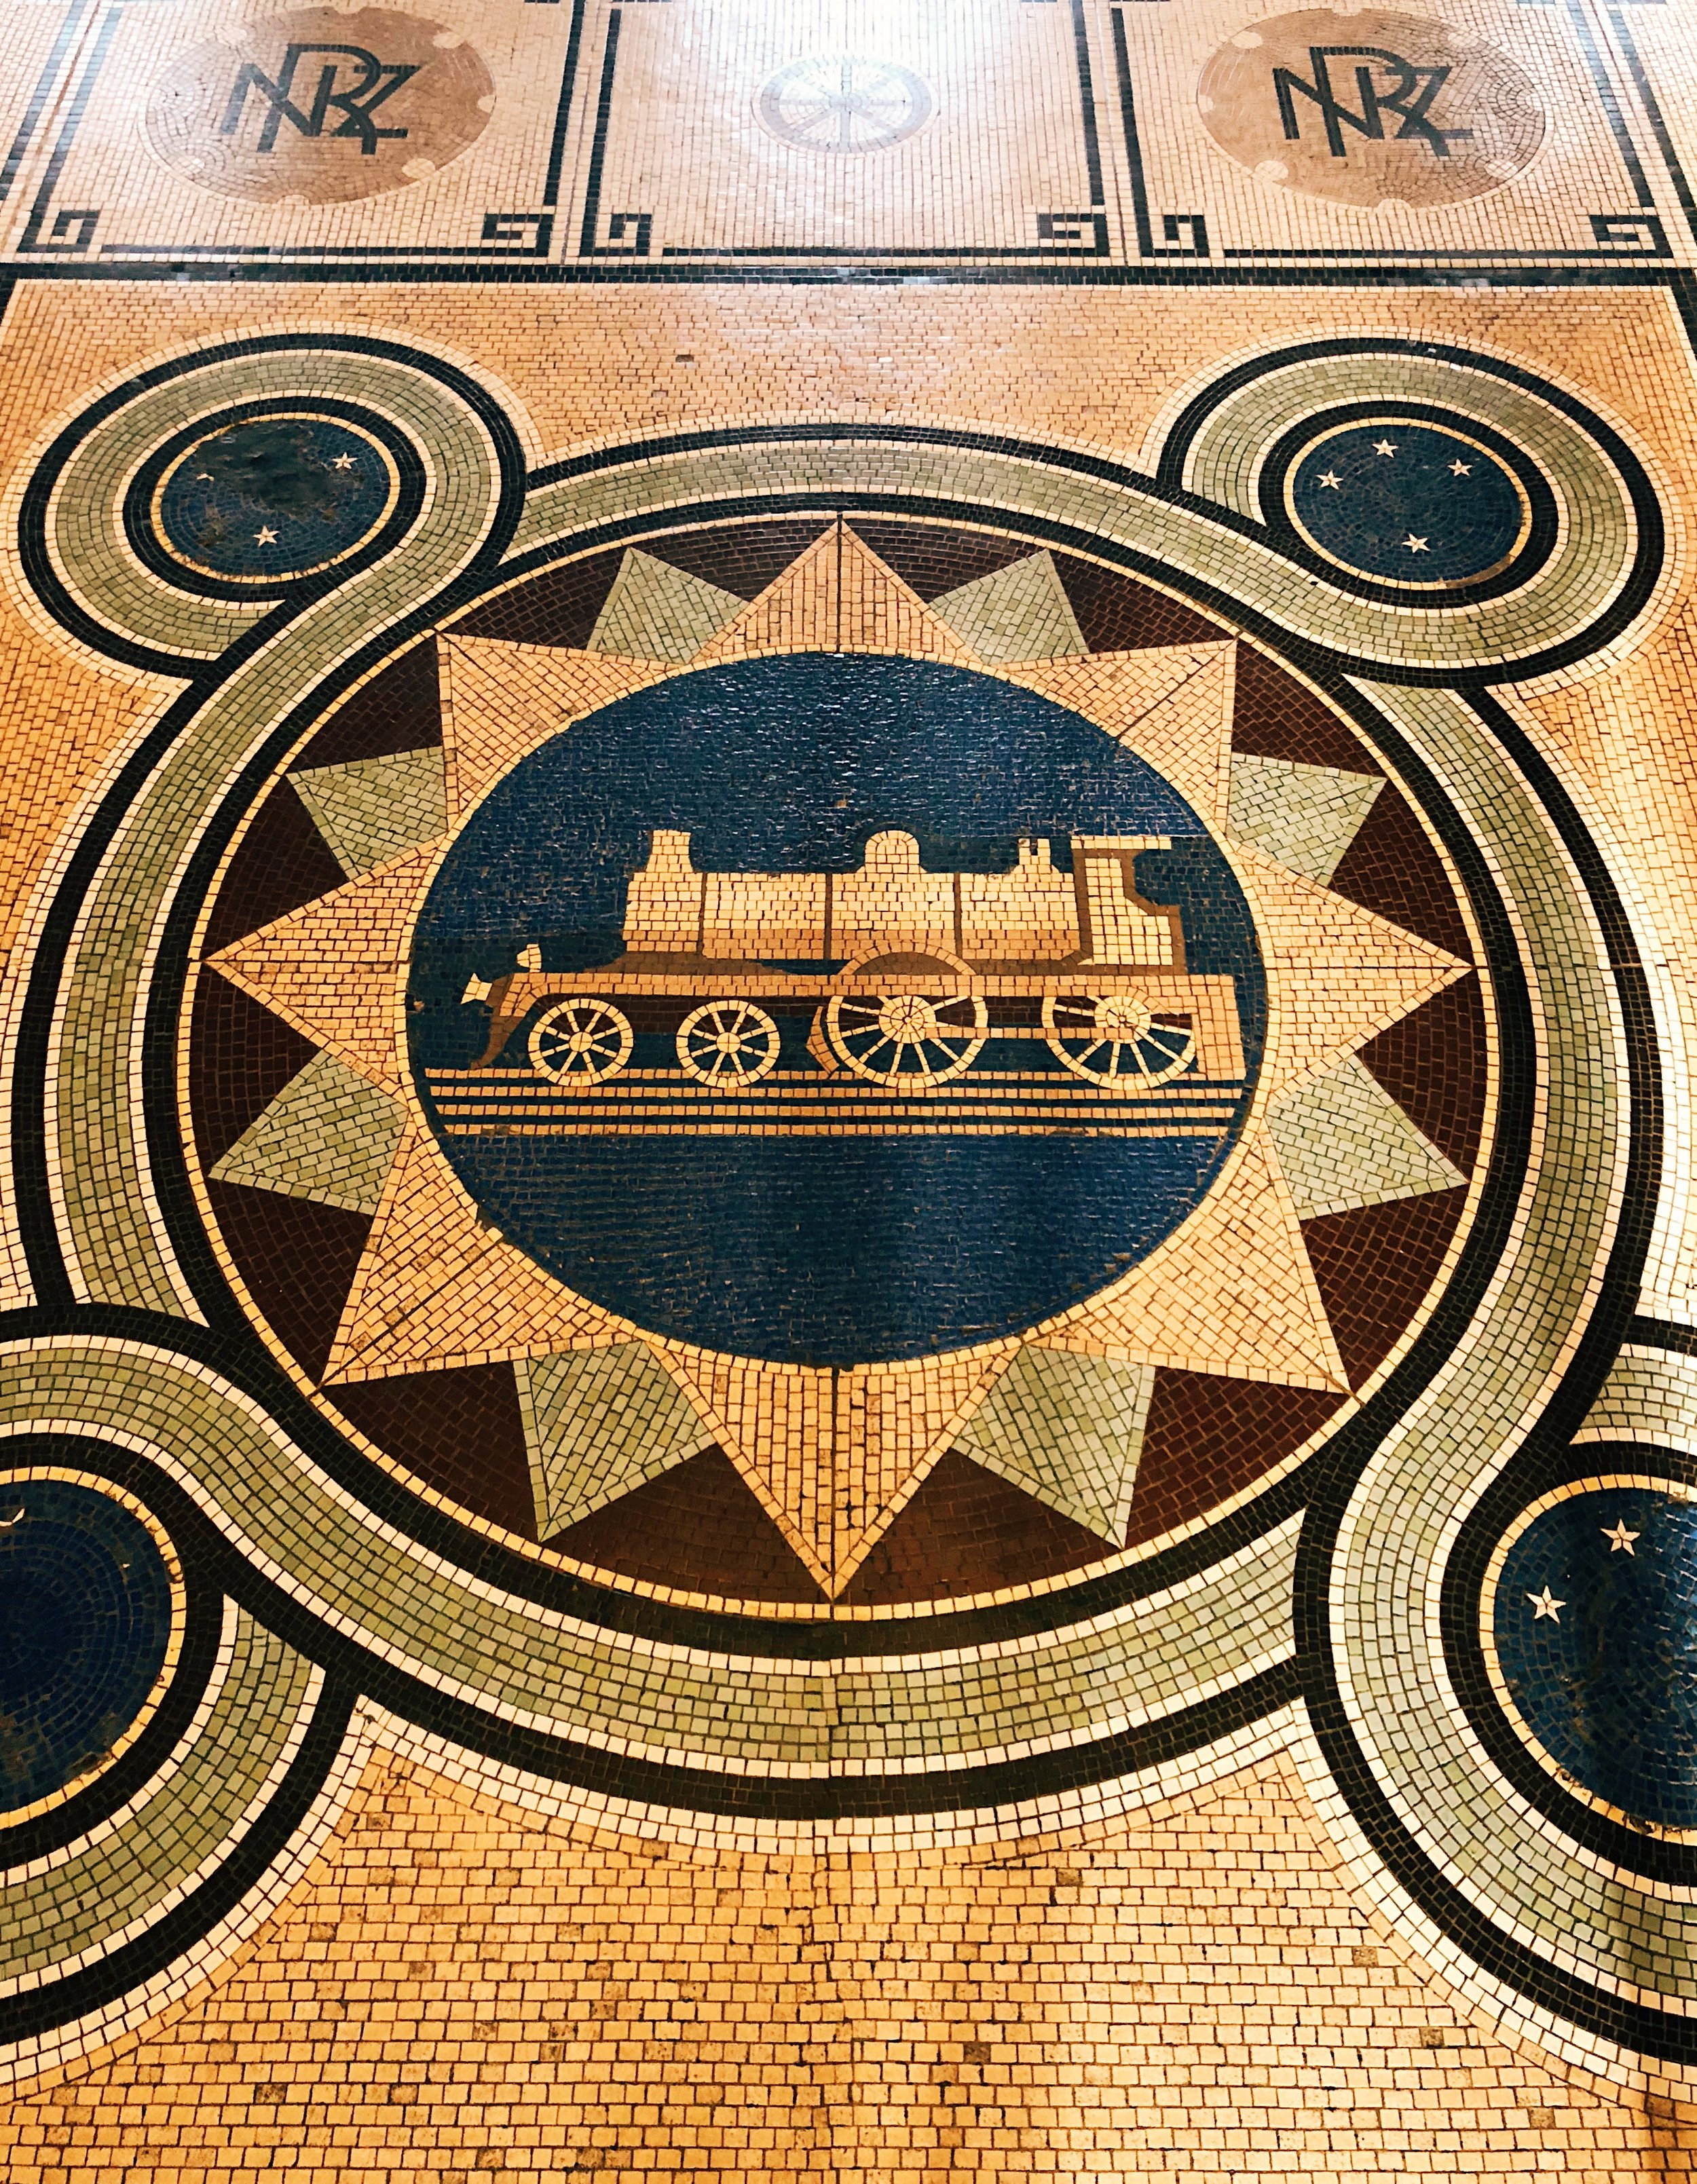 Tiles on the floor of Railway Station